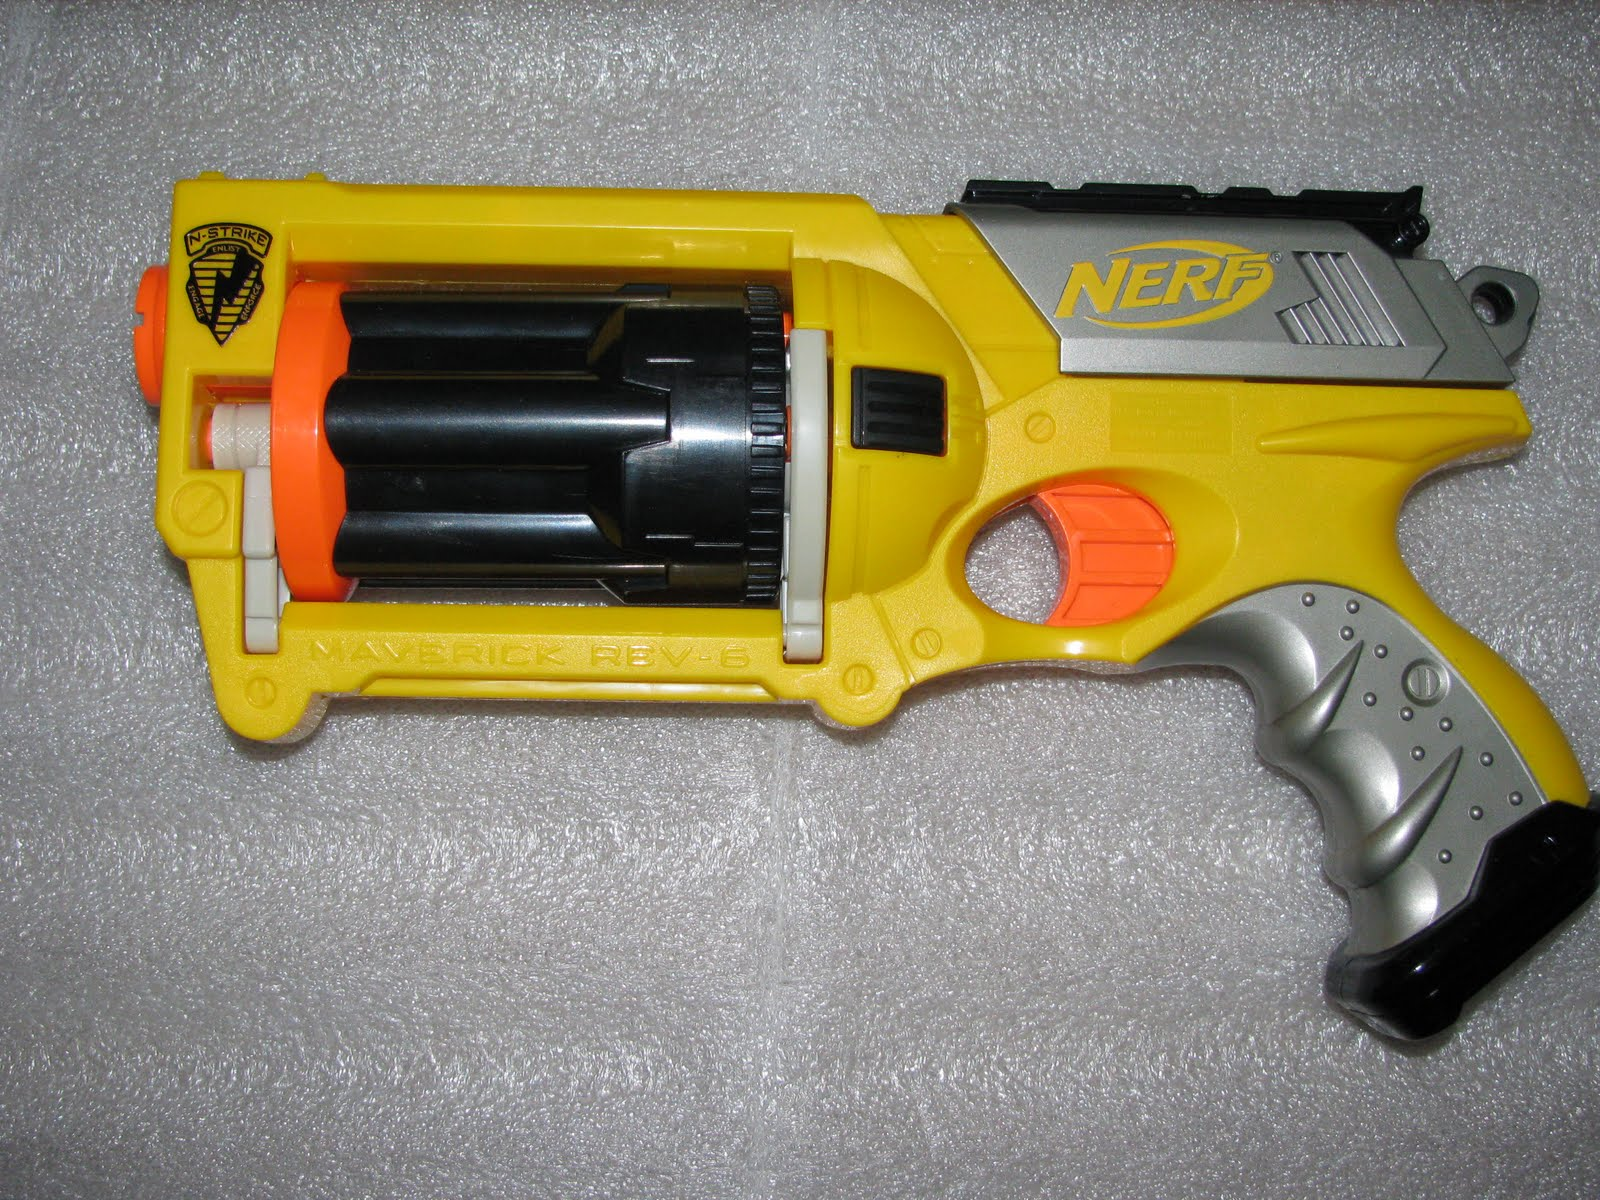 Random Number Generator: The beginning of it all, Nerf Maverick v1